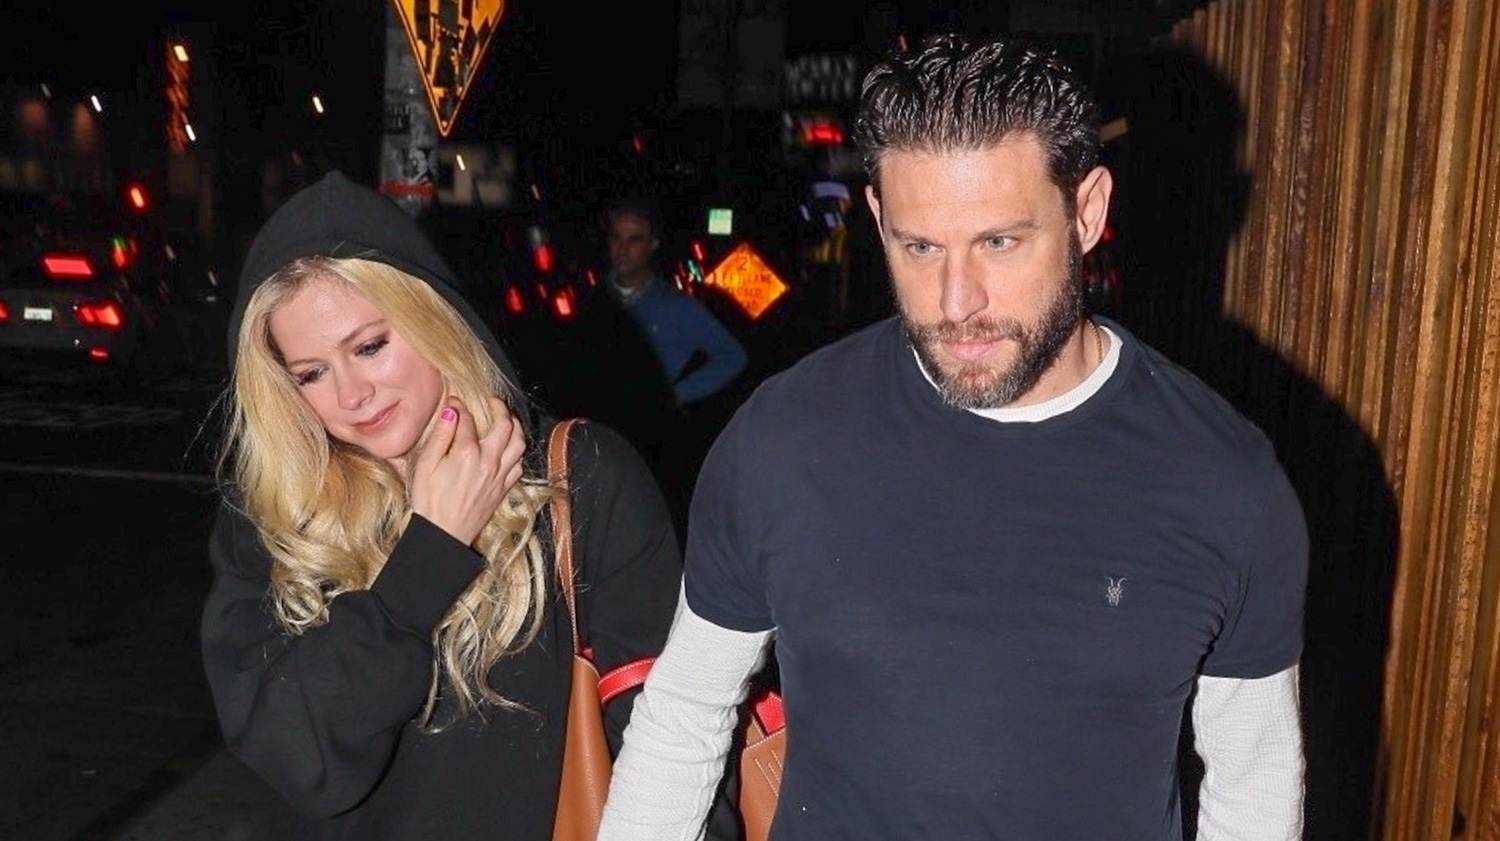 Who is avril lavigne dating now